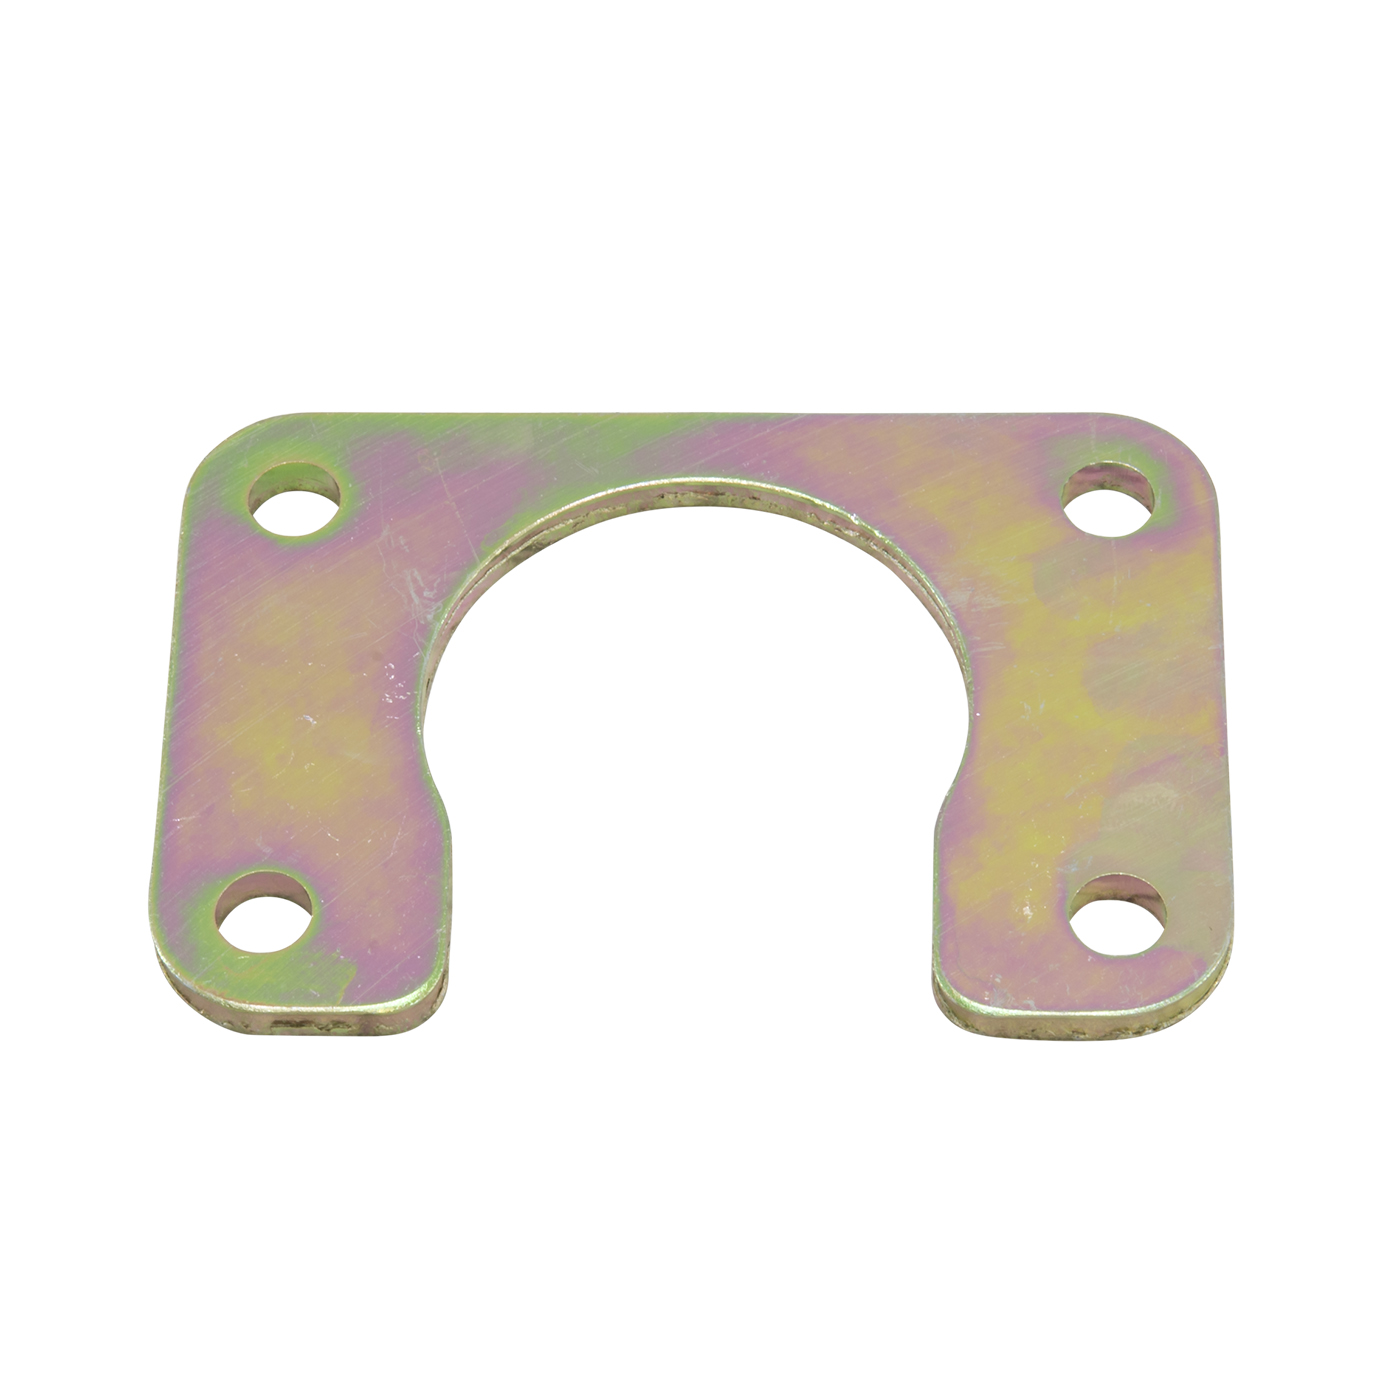 YSPRET-006 - Axle bearing retainer for Ford 9